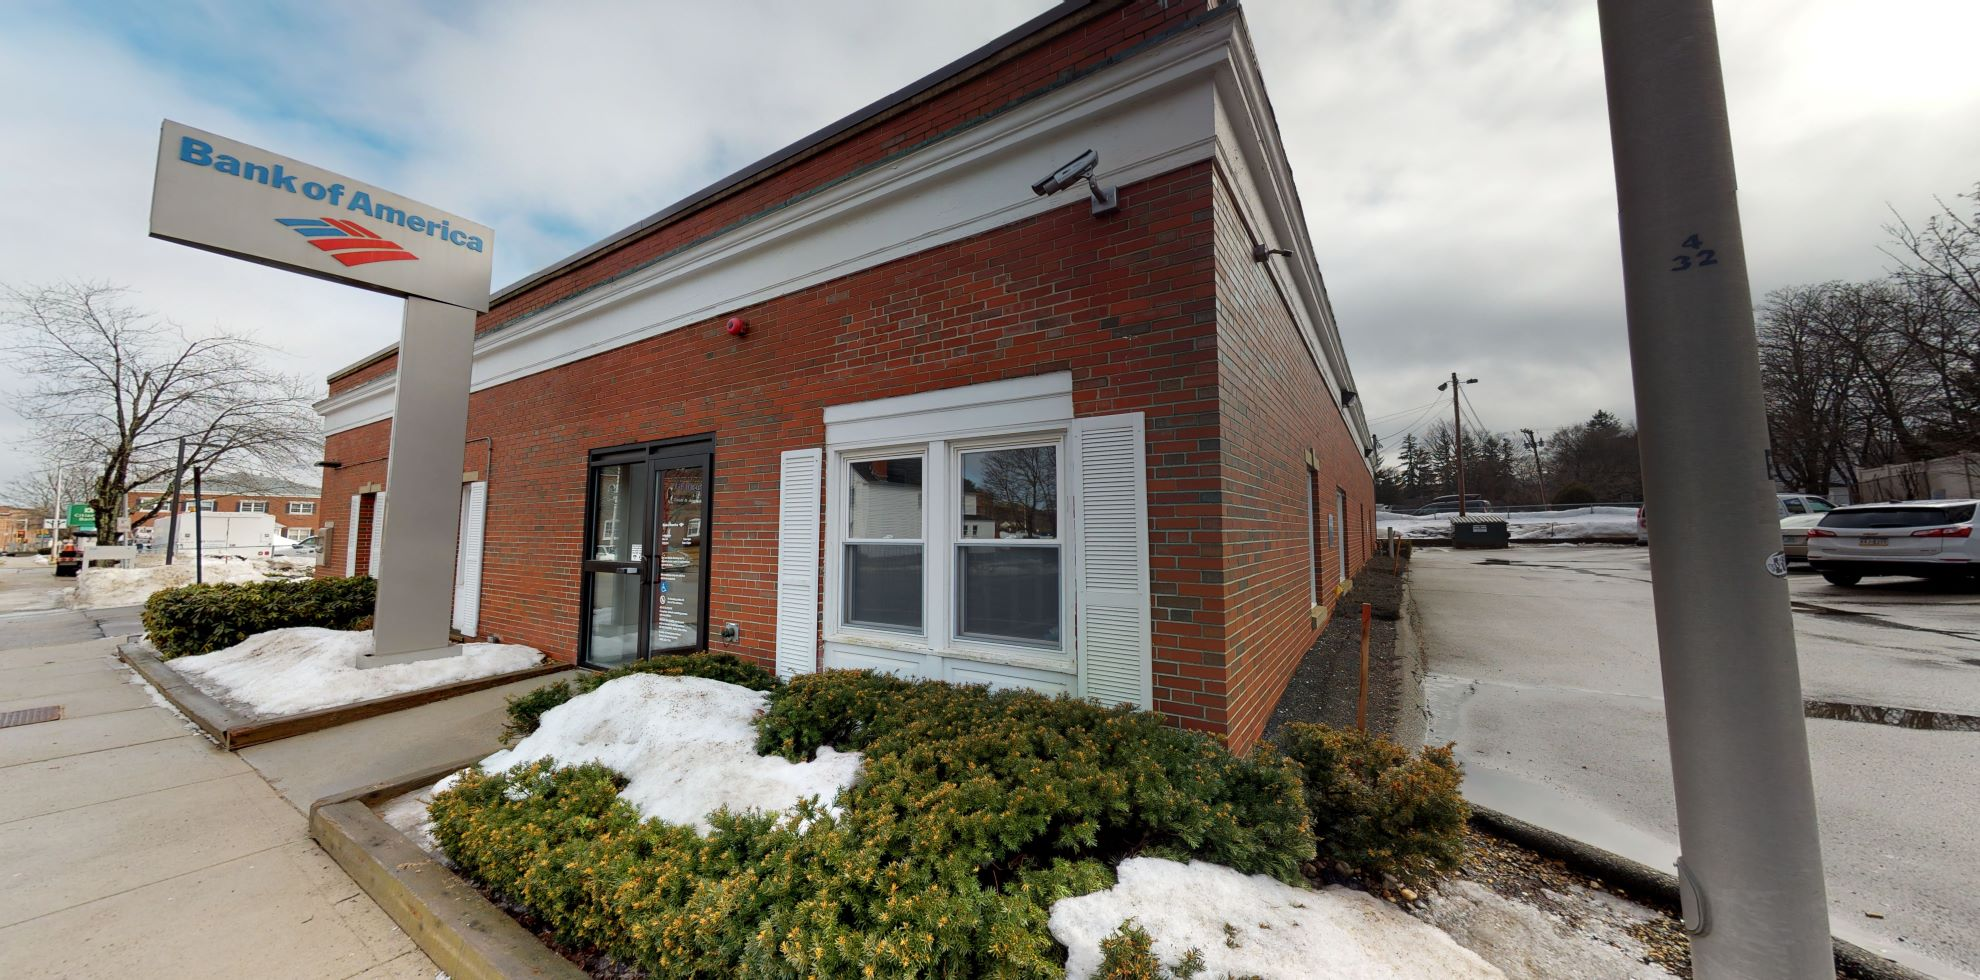 Bank of America financial center with drive-thru ATM | 180 Washington St, Dover, NH 03820